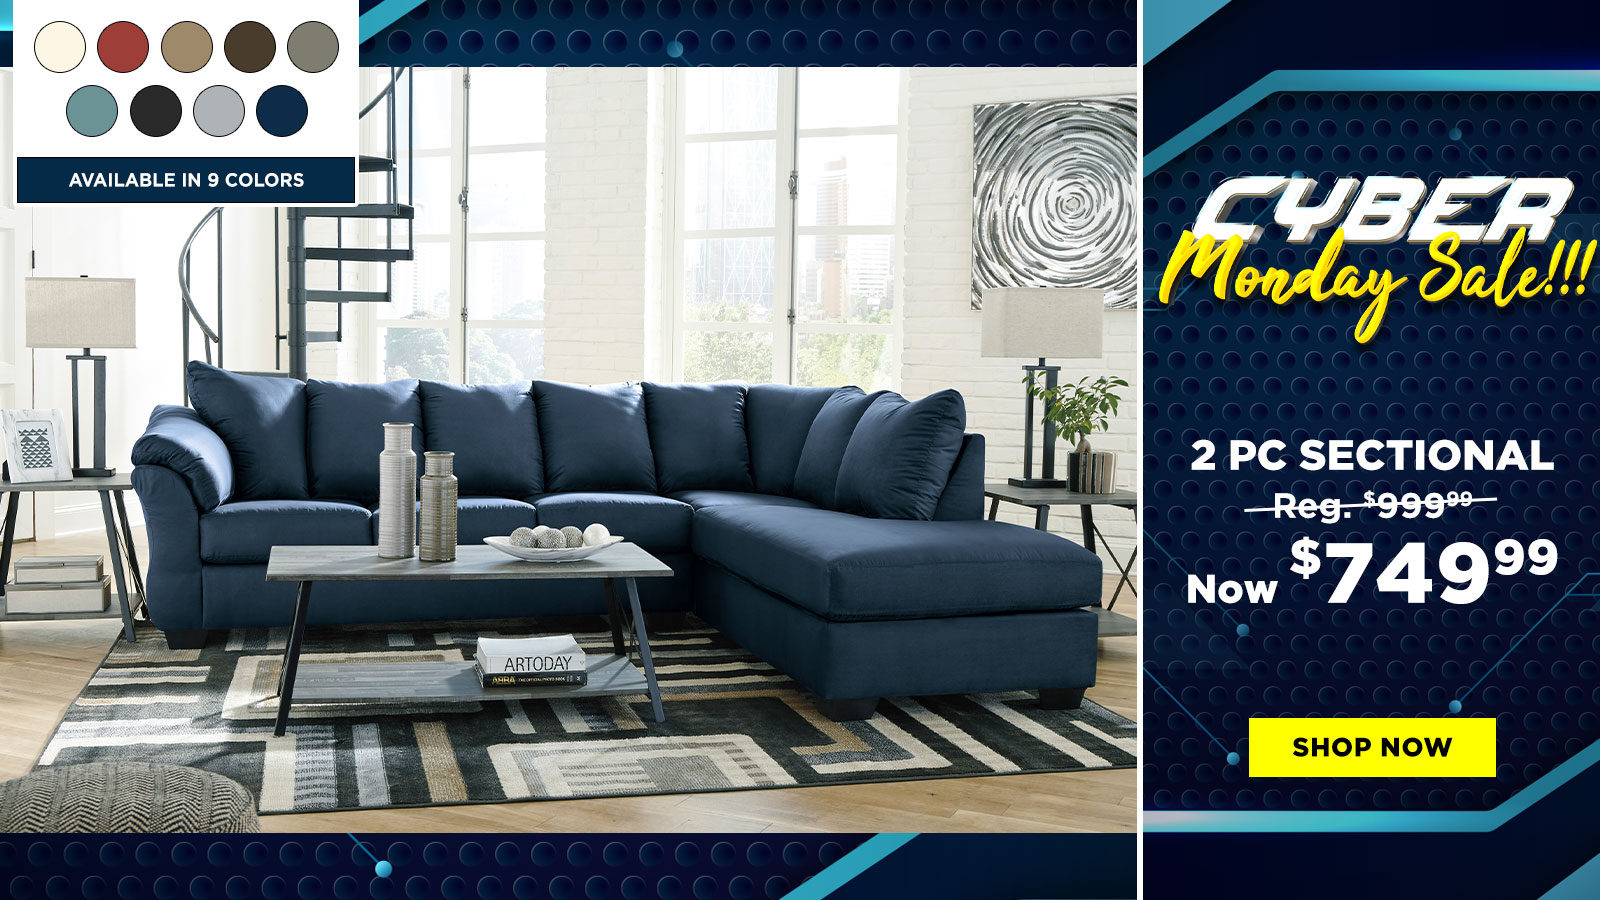 2 Pc Sectional $749.99